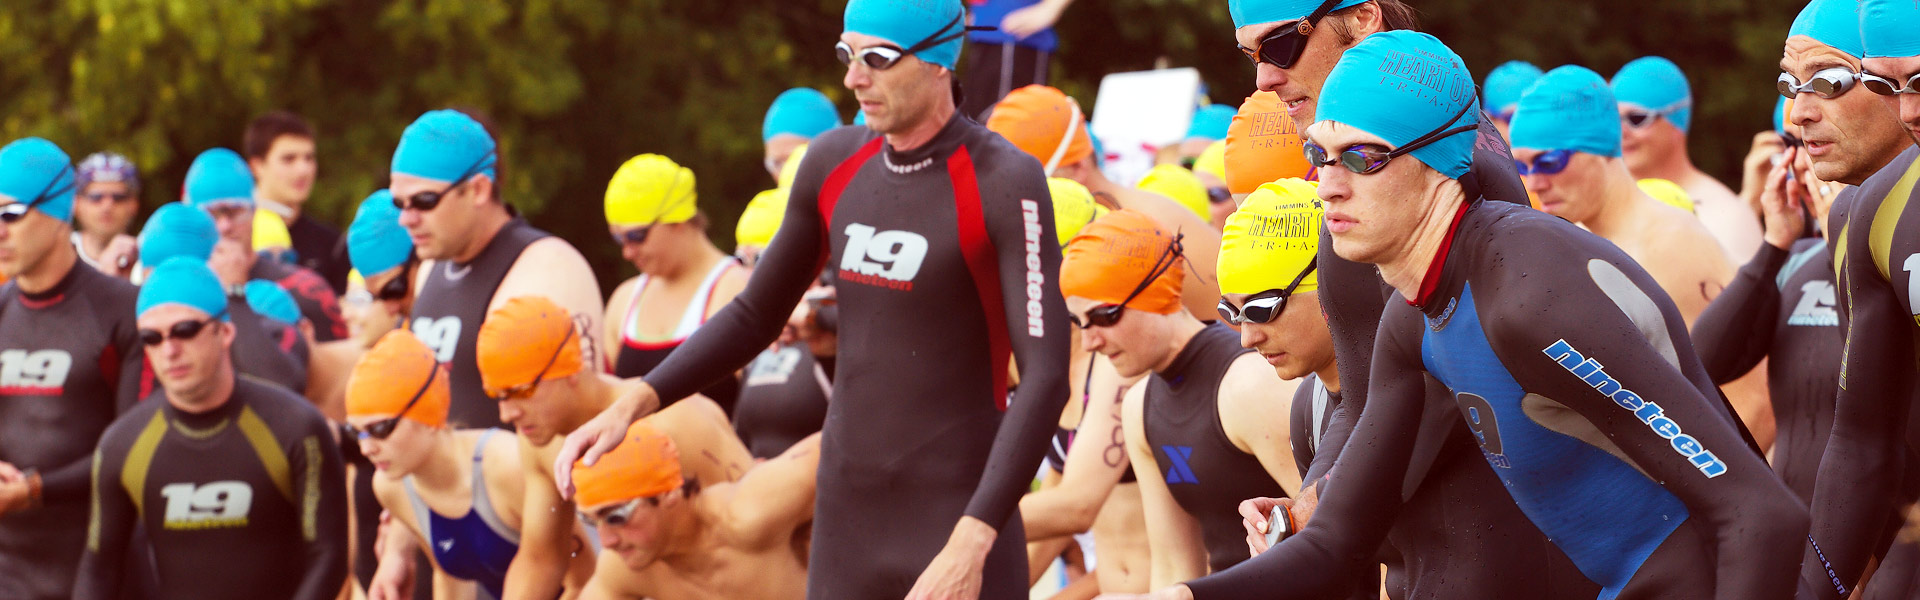 <h2>Heart of Gold Triathlon</h2> Swim, bike and run on Sunday July 8th, 2018 in the fastest growing sport in North America!